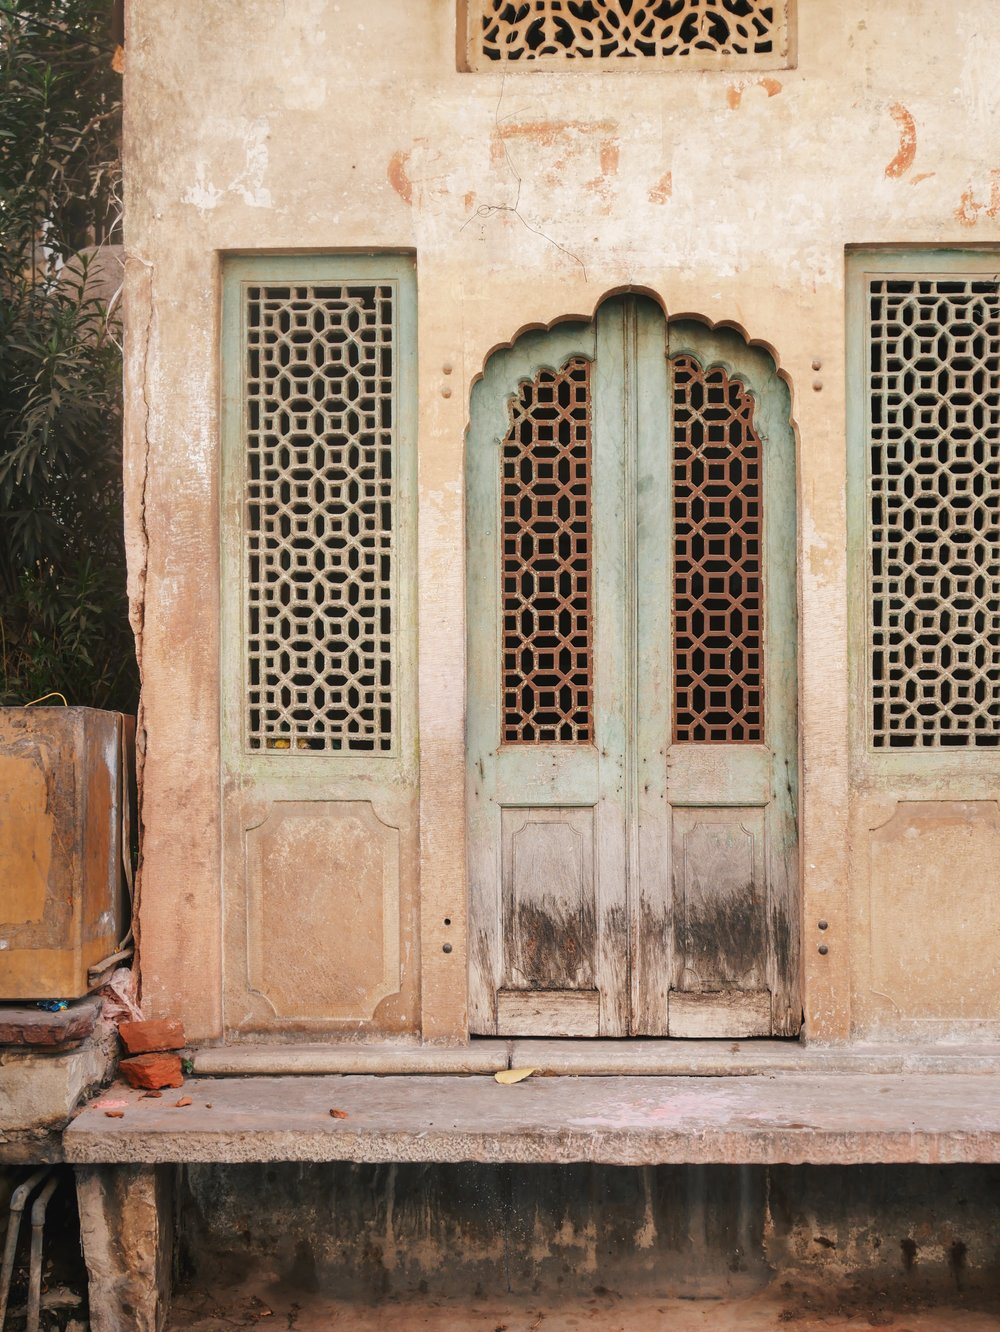 Just a beautiful doorway, Old City